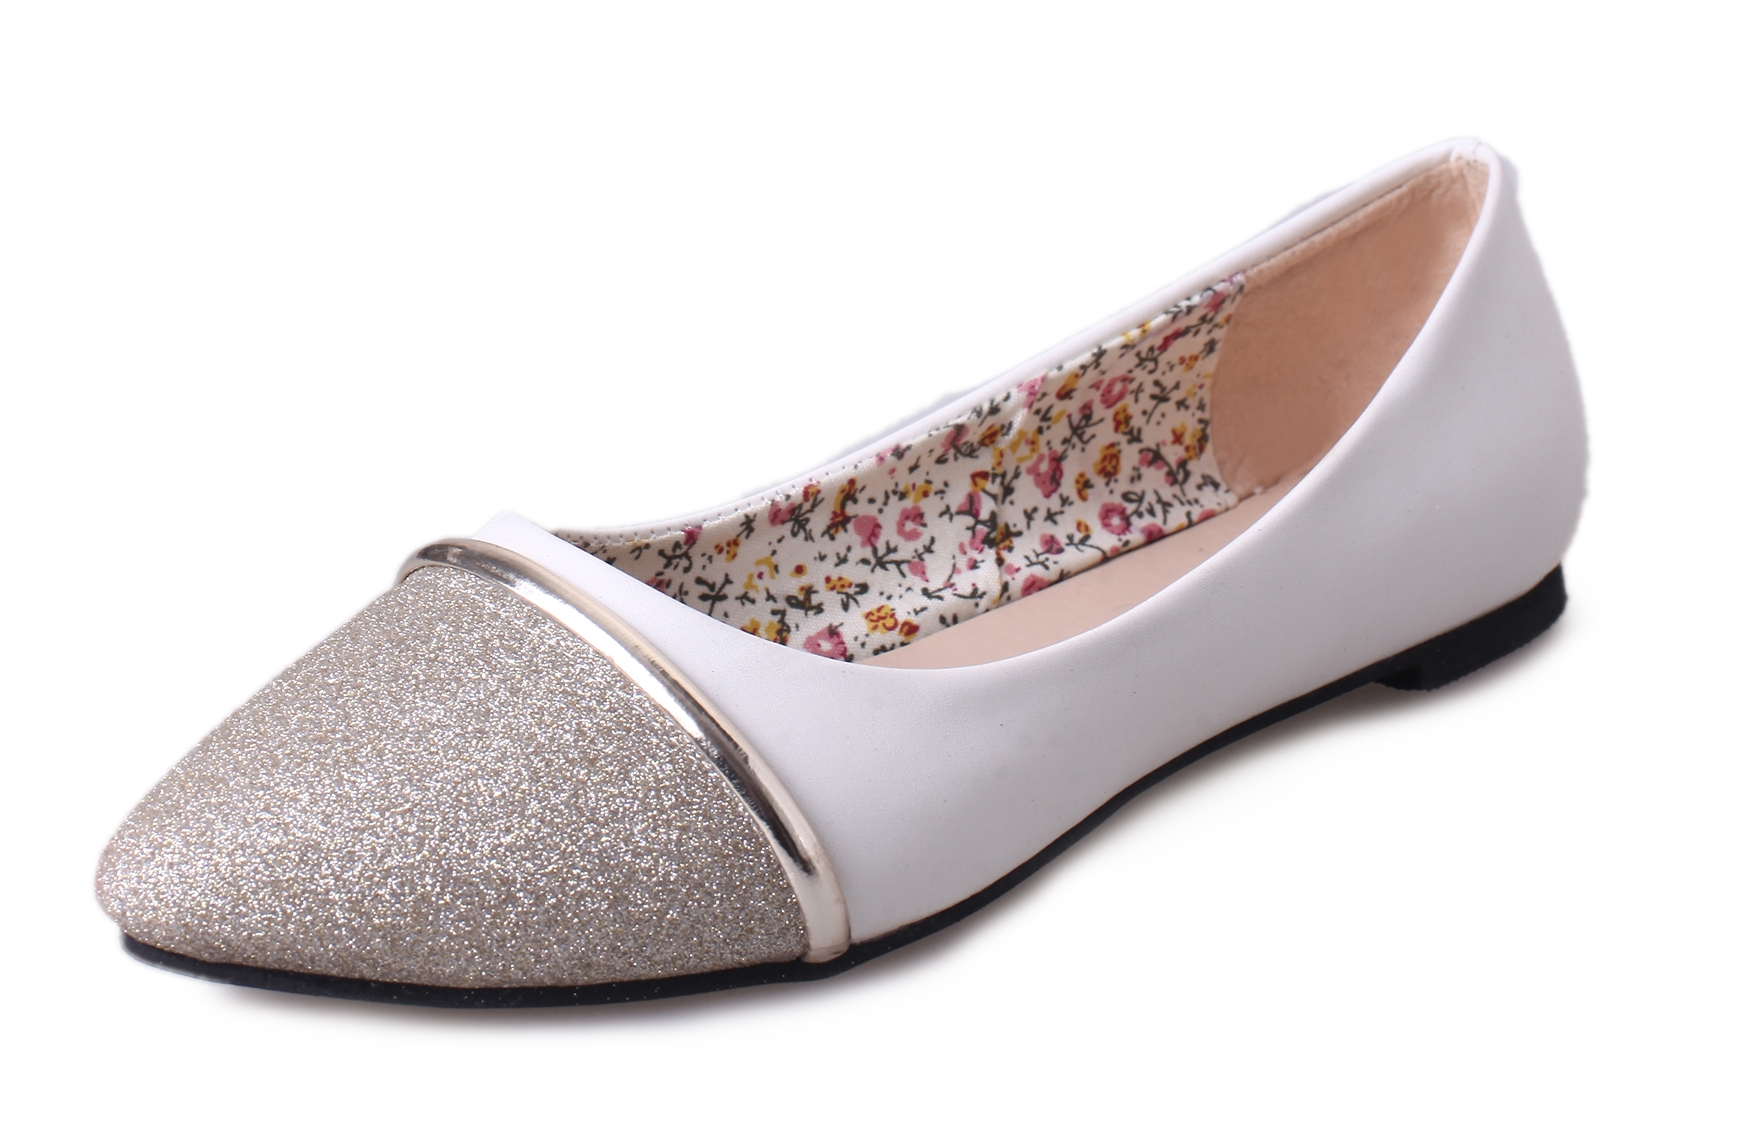 New Spring Autumn Fashion Women Flats Pointed Toe Lazy Slip On Mixed Colors Female Shoes White Plus Gold Silver Black new spring autumn women shoes pointed toe high quality brand fashion ol dress womens flats ladies shoes black blue pink gray